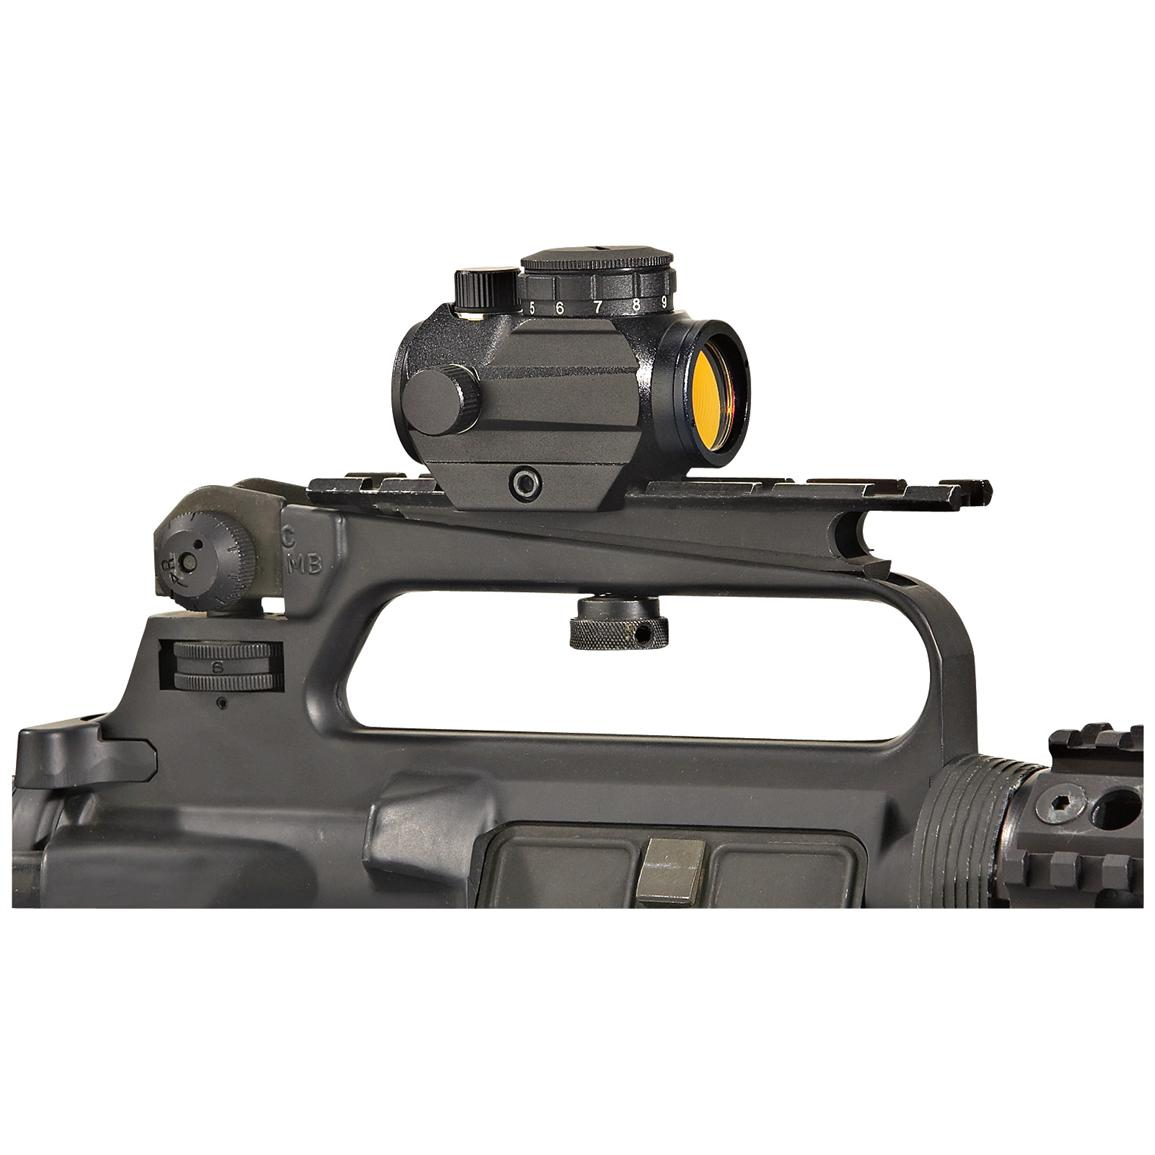 FM Optics™ 1X Mini Micro Red Dot Sight, Matte Black